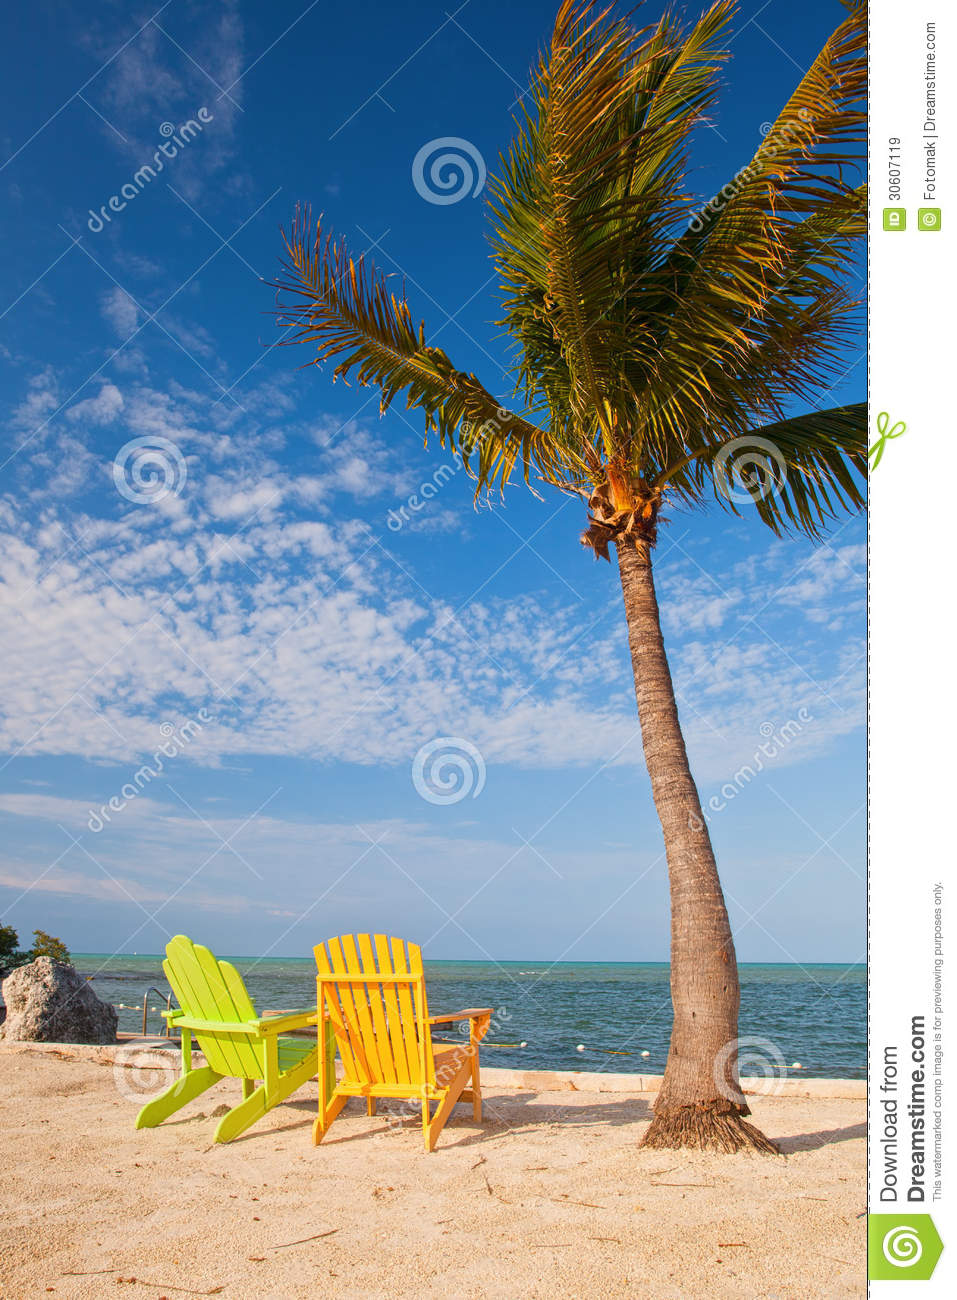 Summer Beach Scene With Palm Trees And Lounge Chairs. Florida, Outdoor.